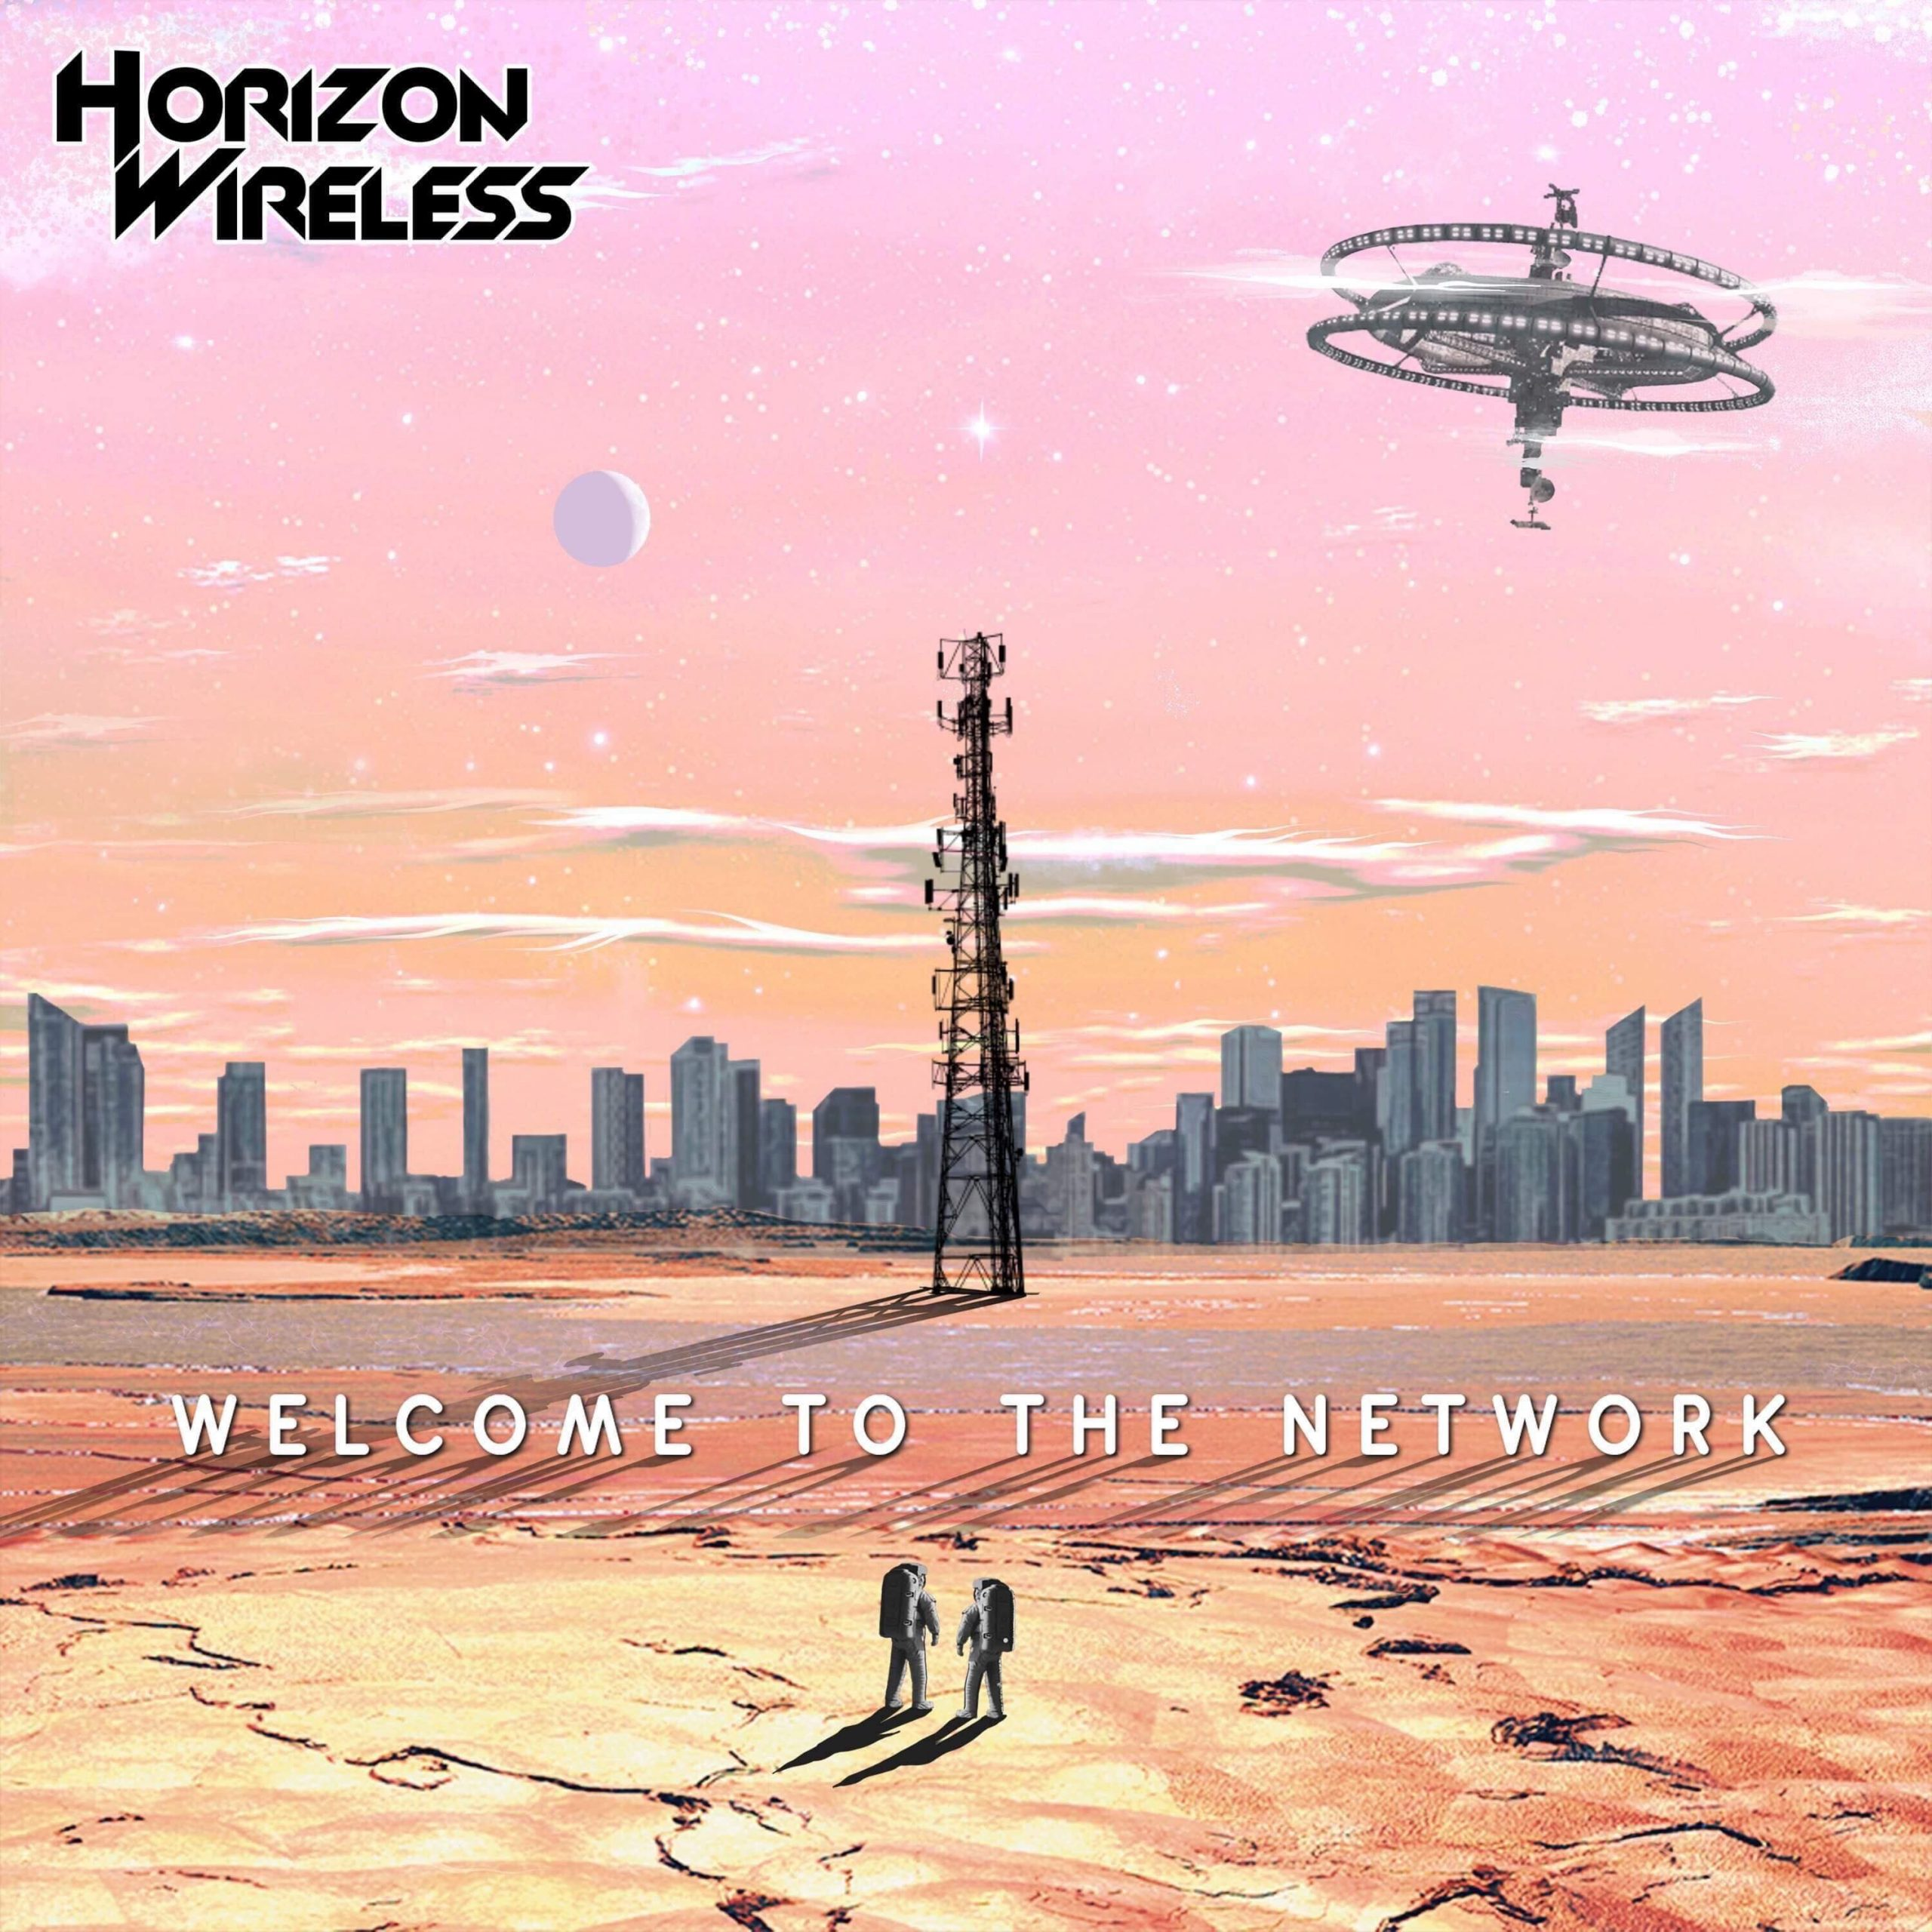 Album Review: Horizon Wireless, Welcome to the Network (Released Today 11/15!)